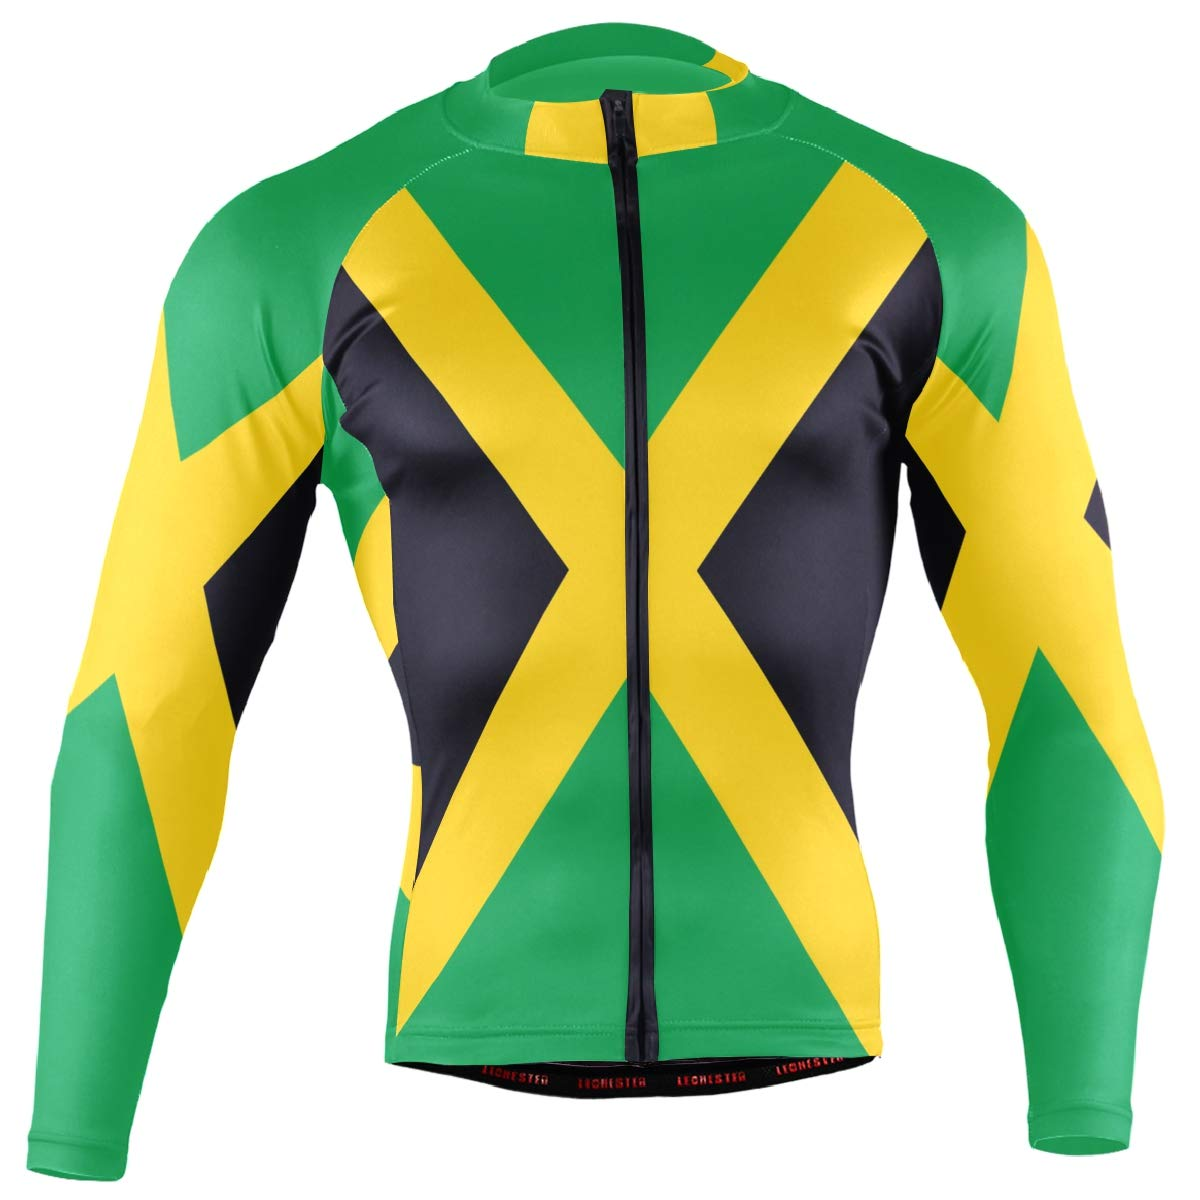 CHINEIN Men's Cycling Jersey Long Sleeve with 3 Rear Pockets Shirt Jamaica Flag by CHINEIN